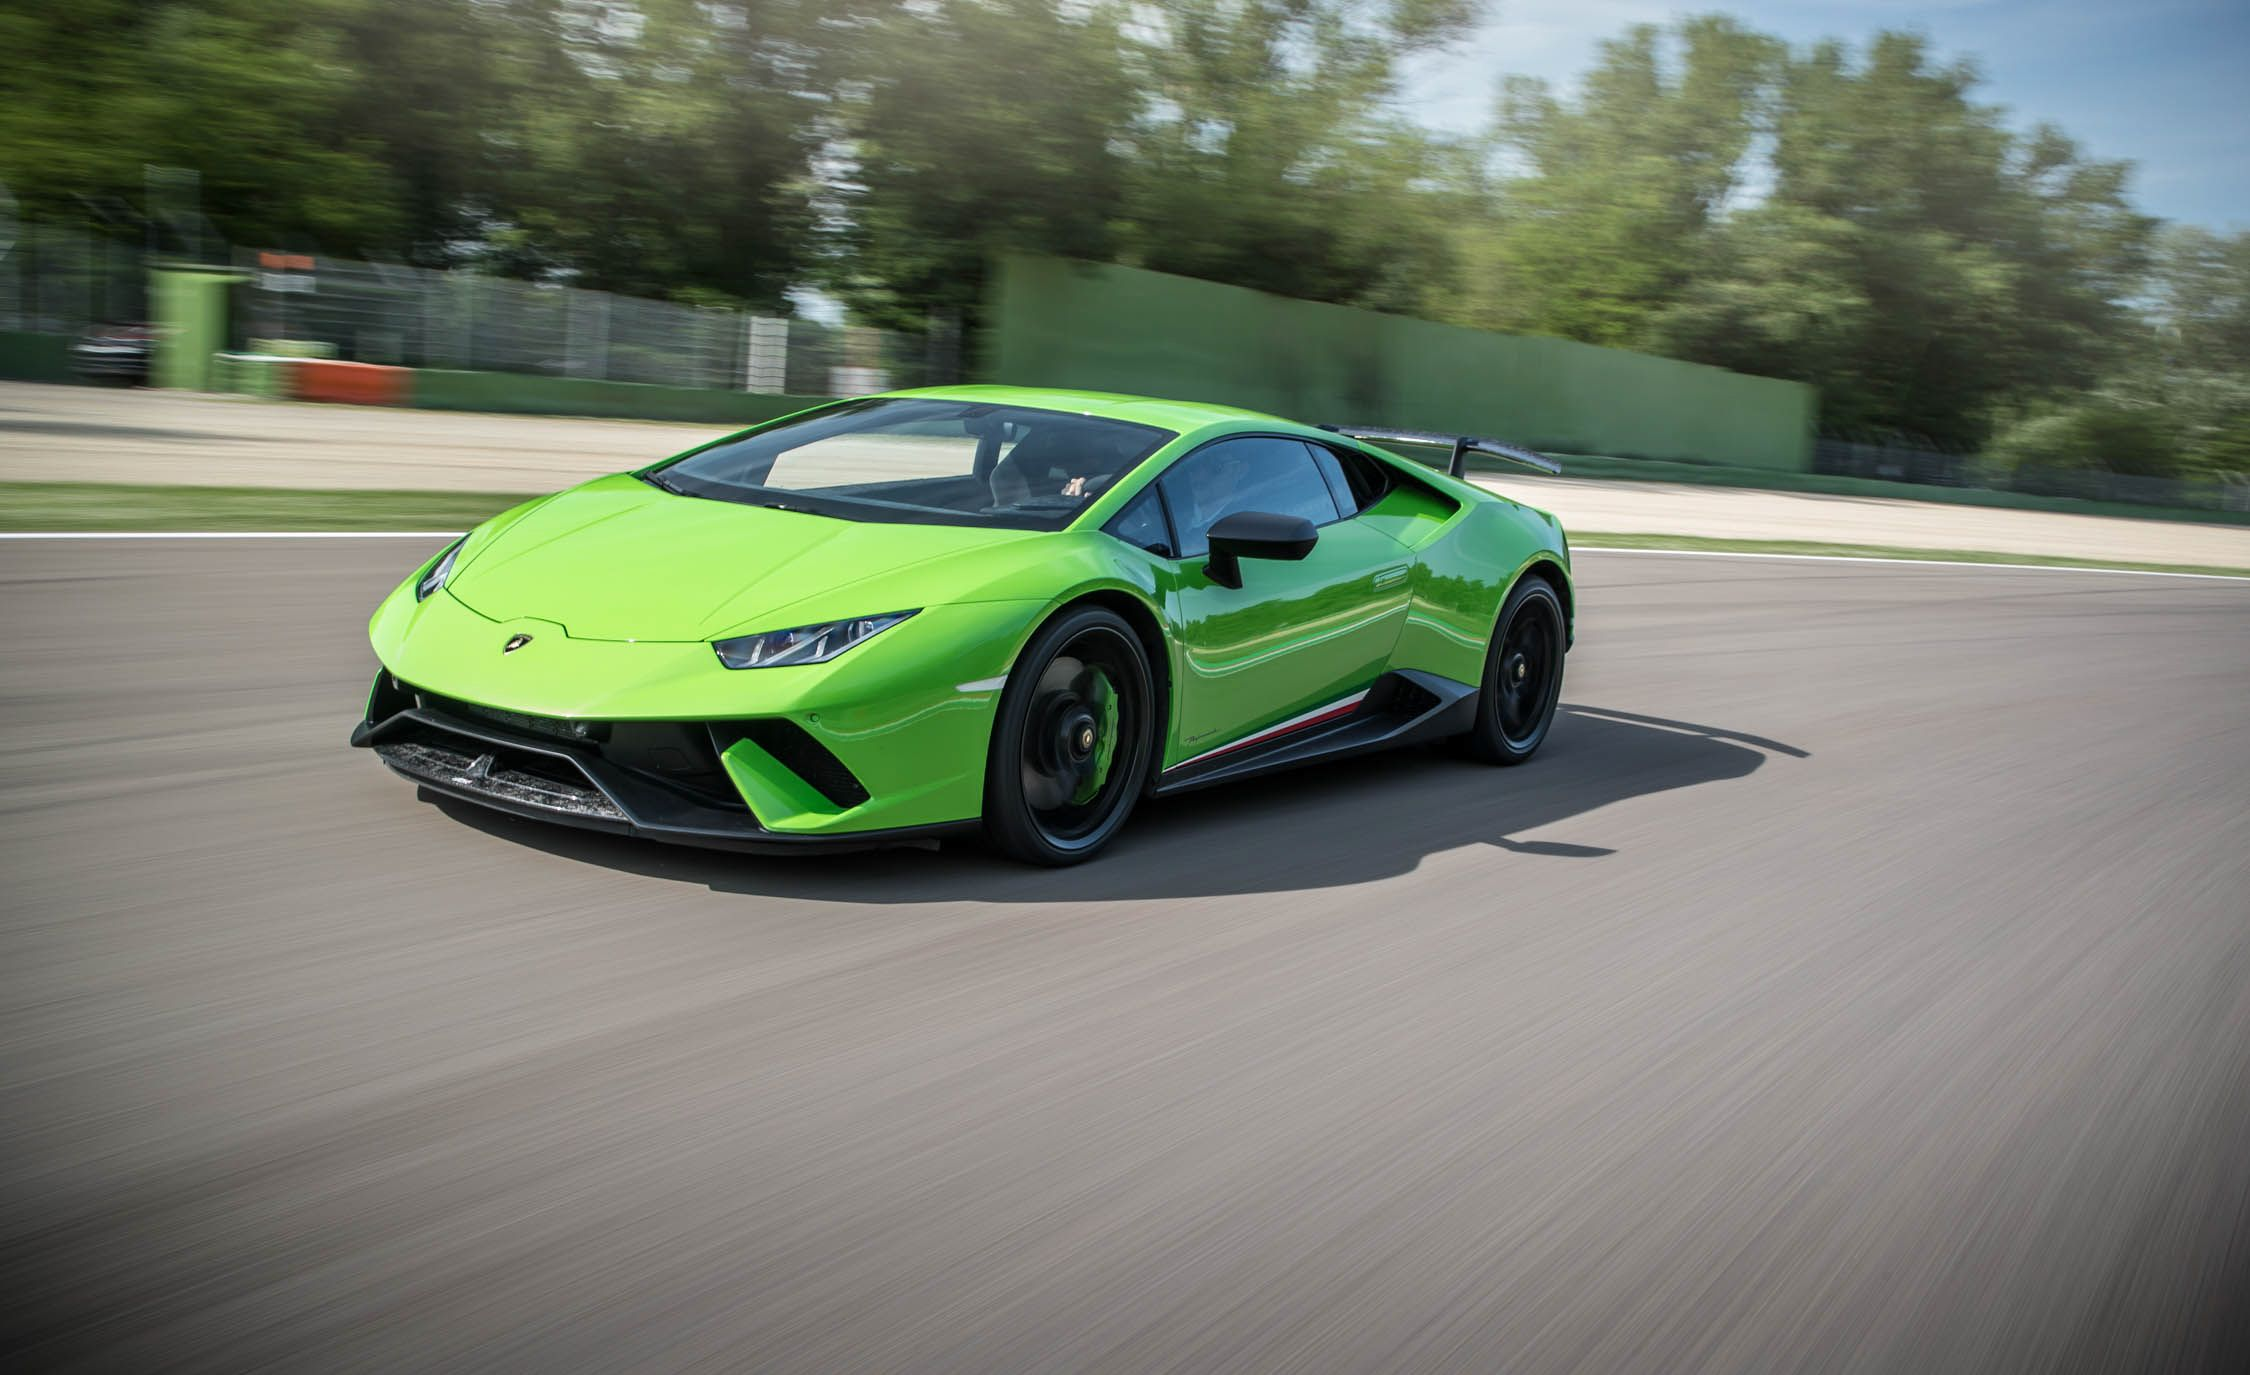 s models used photo original hp cars arrives suv prices lamborghini news with car urus driver and